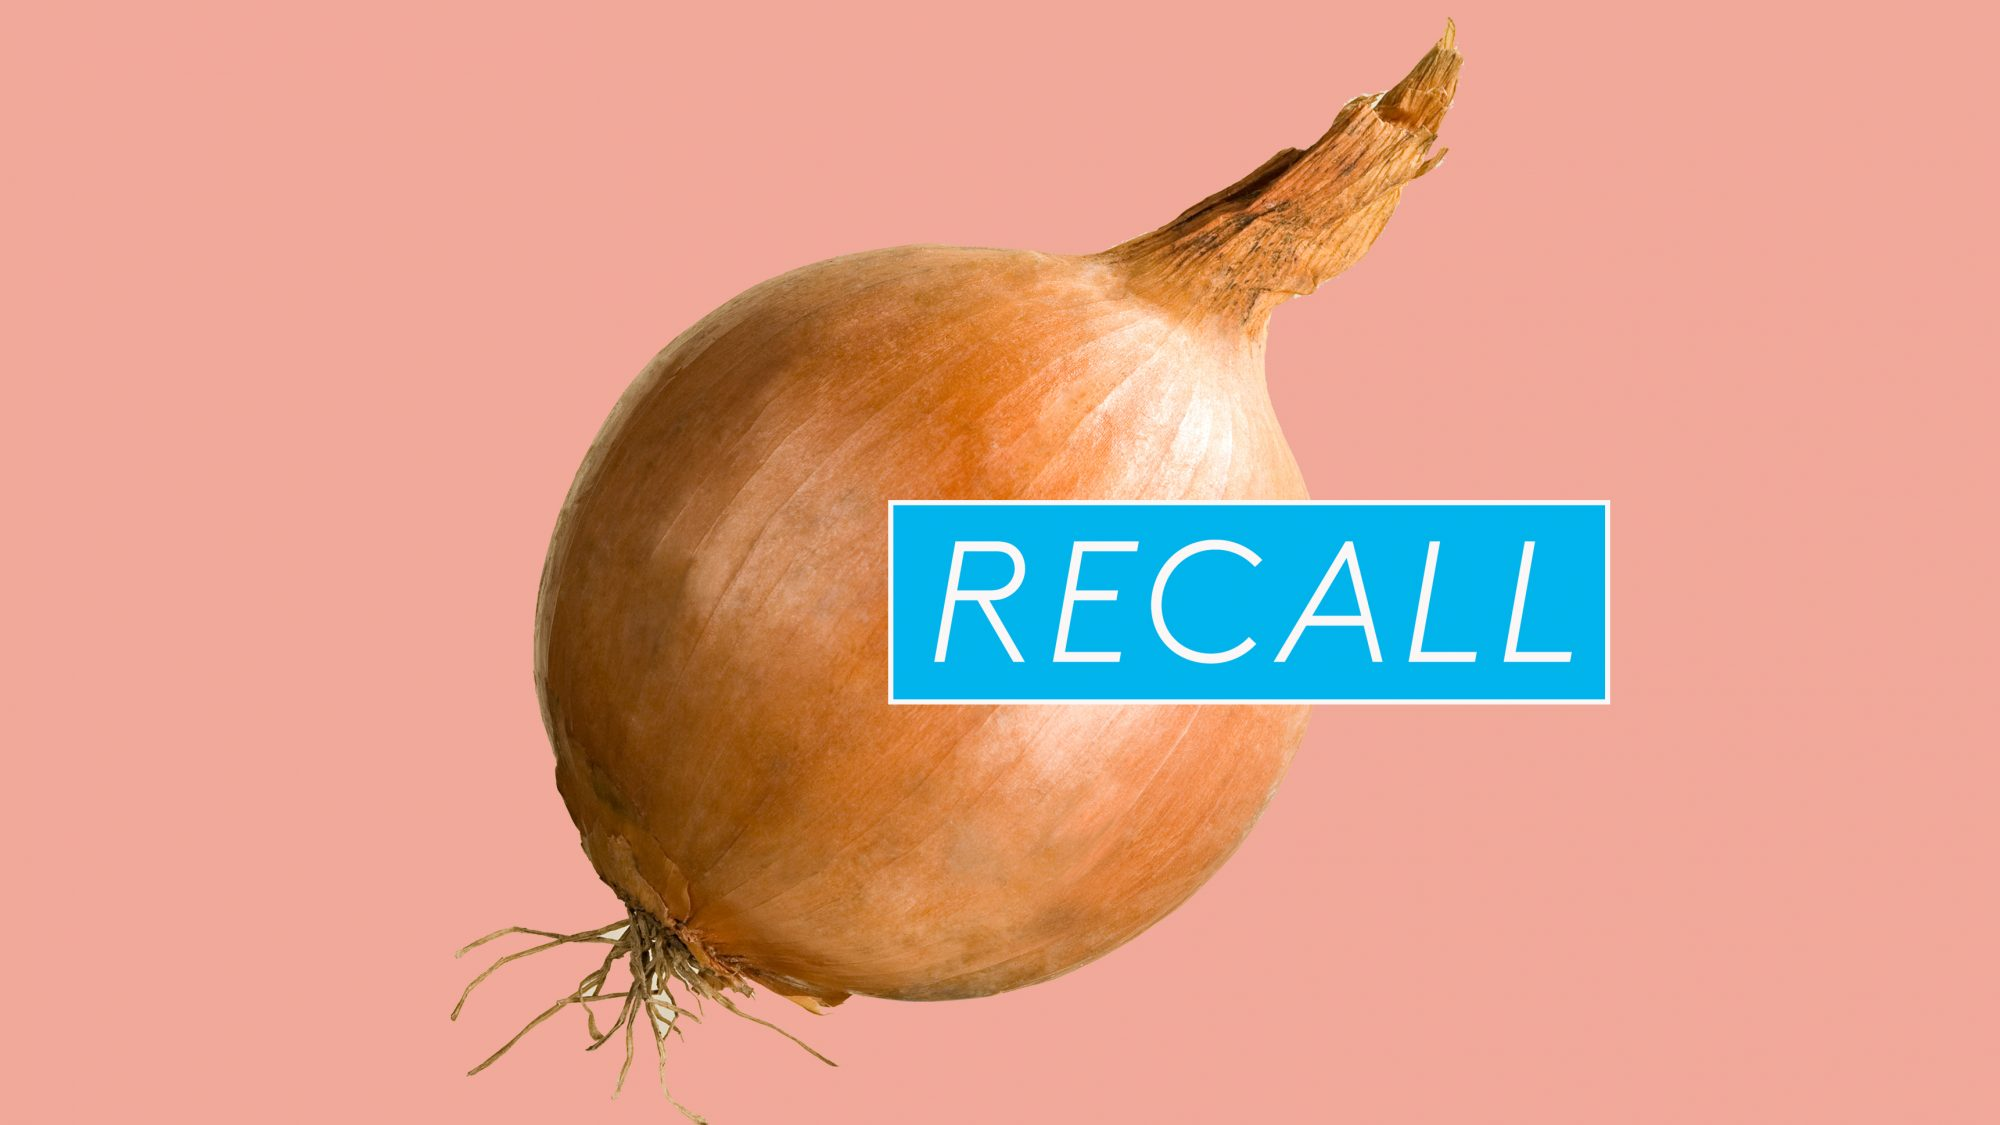 Onion recall: Salmonella Outbreak Linked to Fresh, Whole Onions Has Sickened More Than 650 People